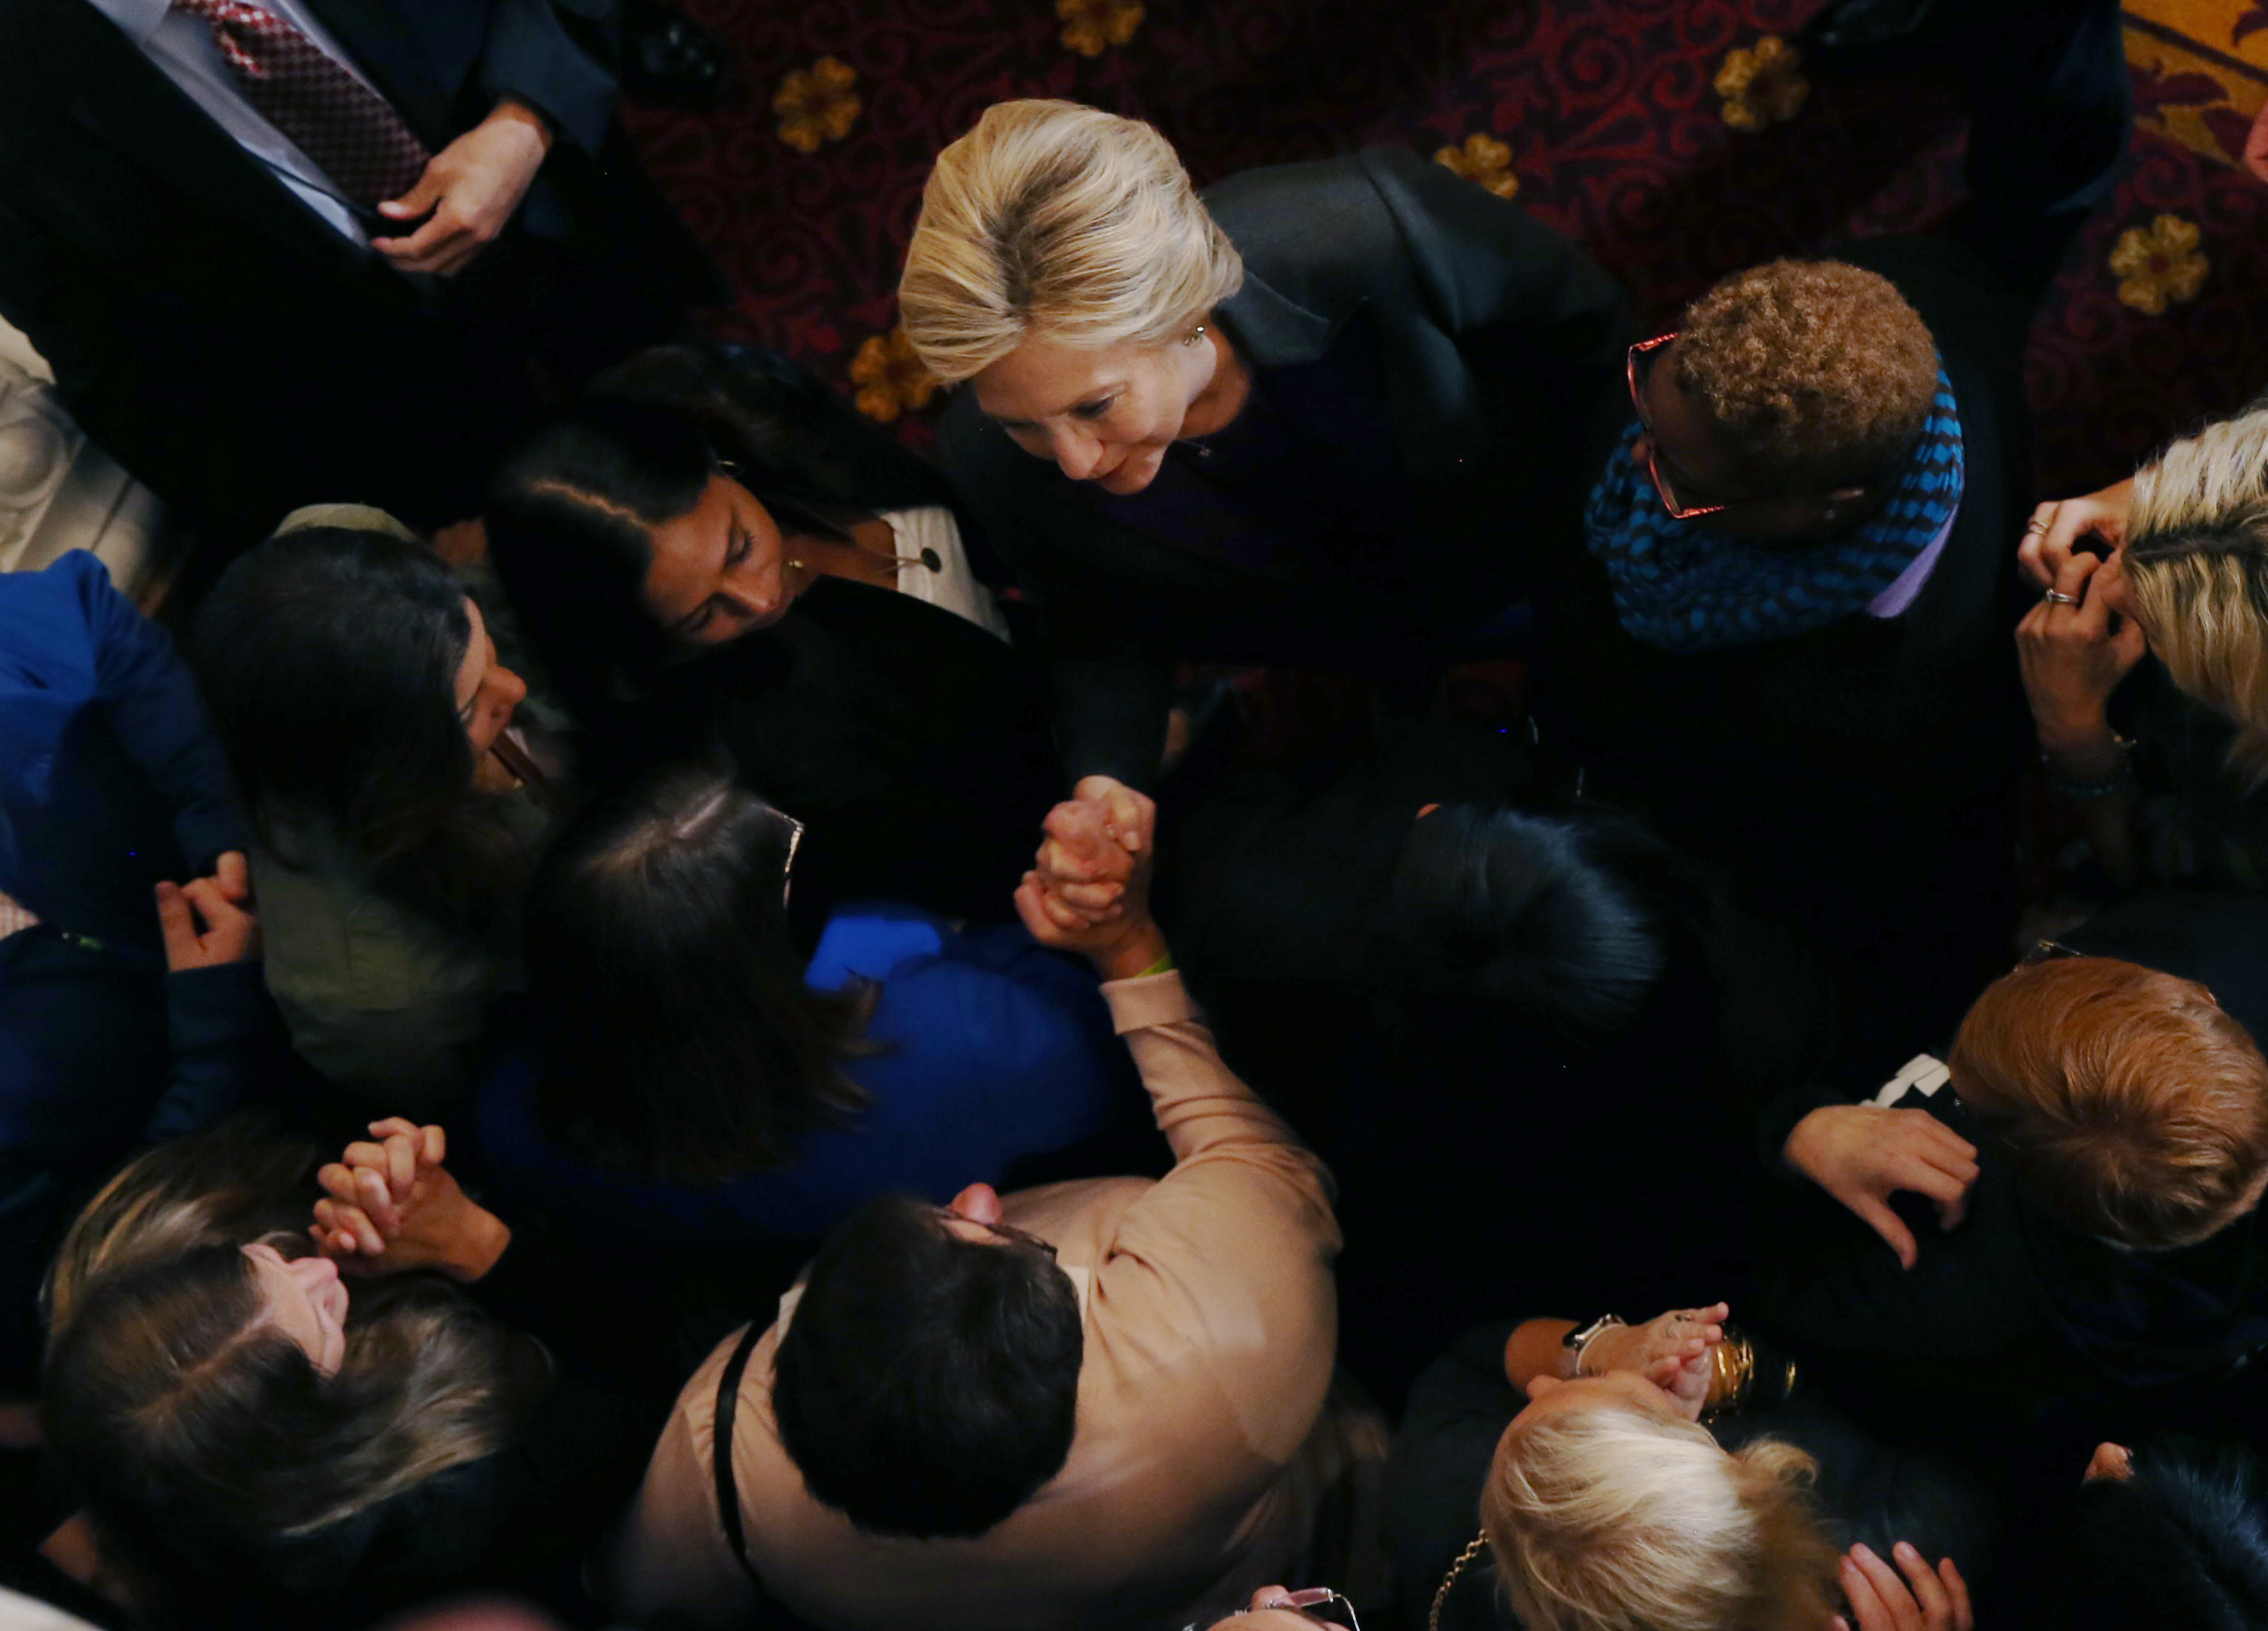 Hillary Clinton speaks with staff and supporters after a speech about the results of the U.S. election at a hotel in New York, November 9, 2016. REUTERS/Carlos Barria  - HT1ECB91D6U7U